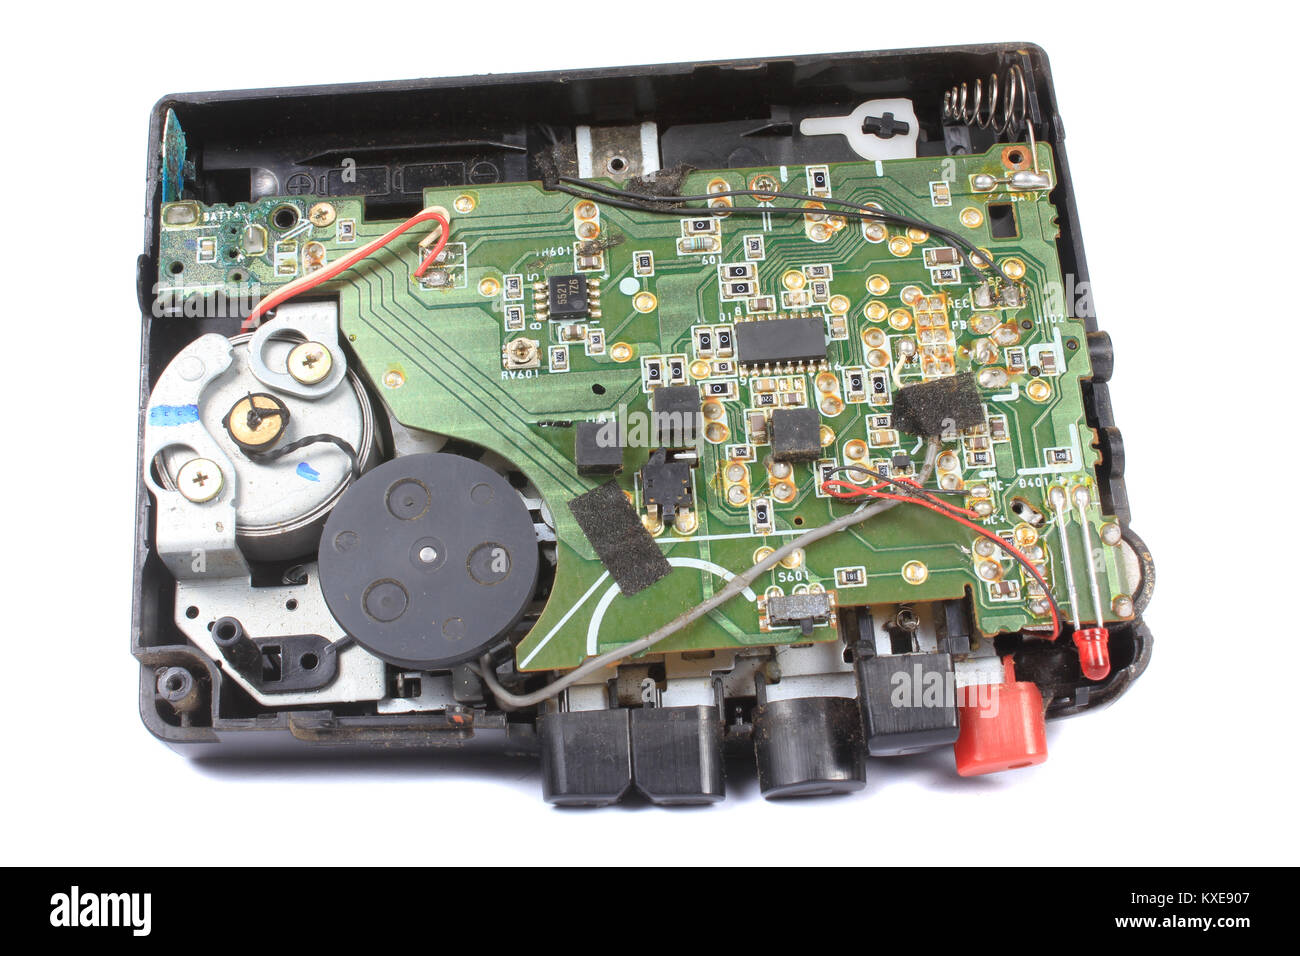 An old audio cassette walkman stripped down to show its circuitry and retro technology. - Stock Image